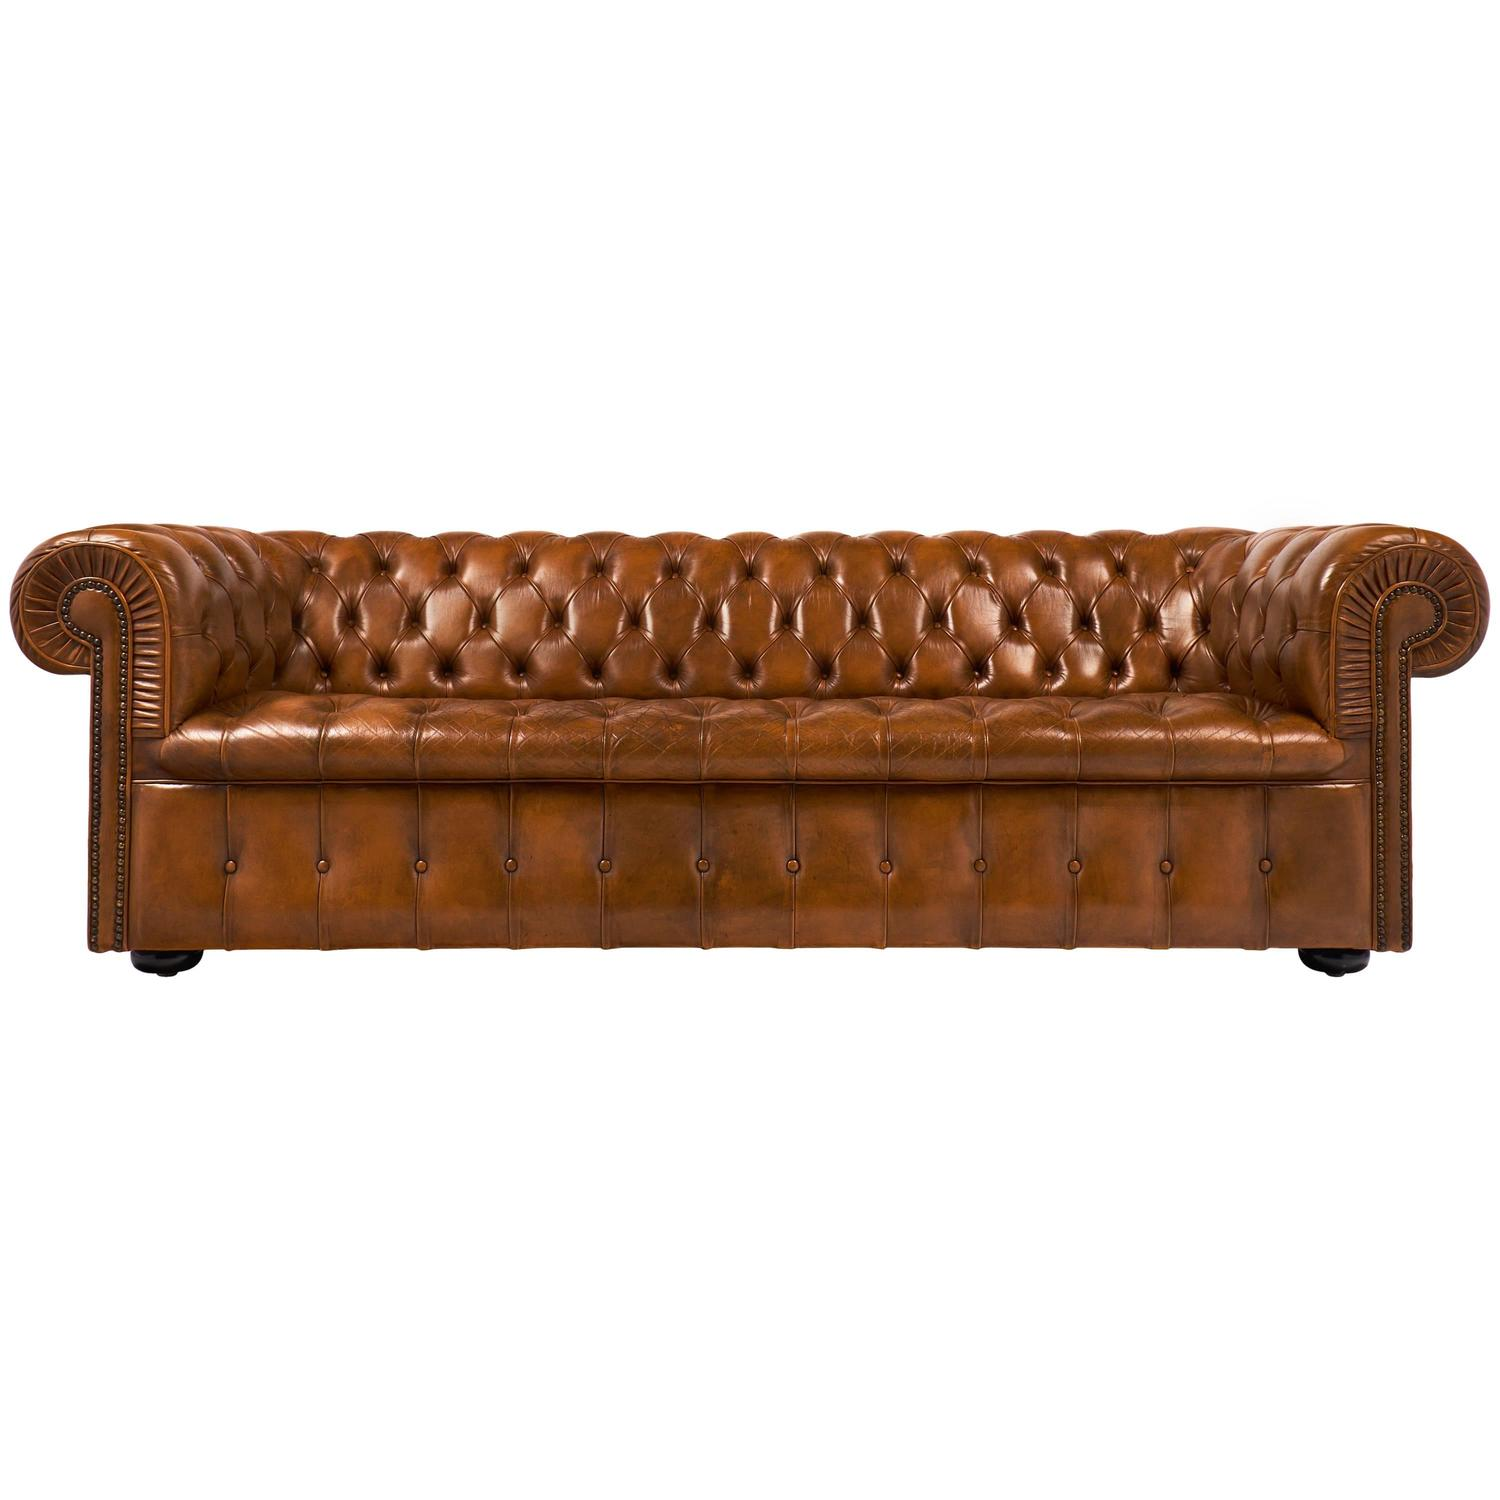 cognac leather sofa cognac leather sofa thesofa. Black Bedroom Furniture Sets. Home Design Ideas